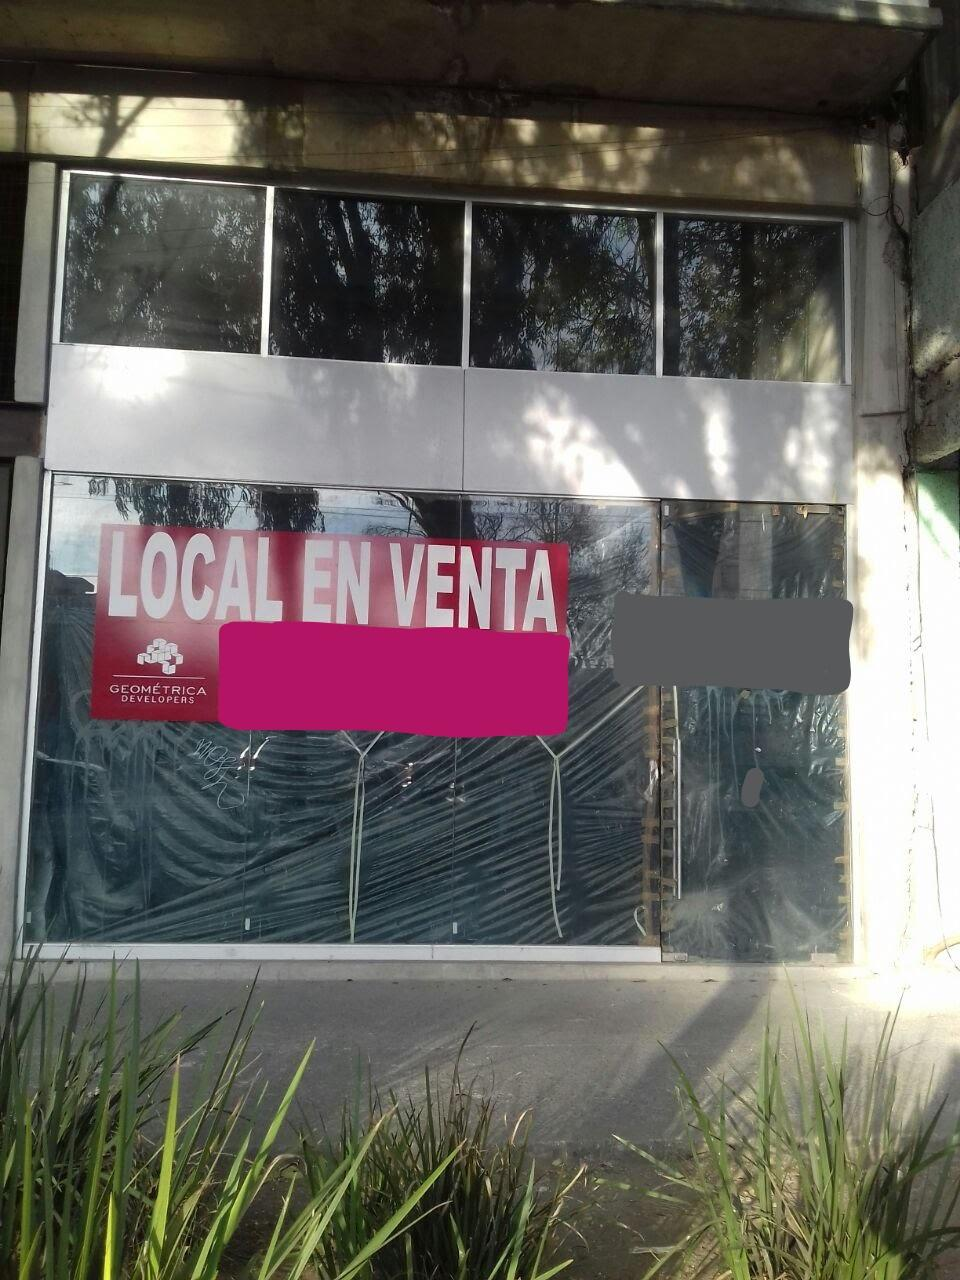 Local comercial en Venta Eje Central Lázaro Cárdenas 195, Colonia Doctores, Cuauhtémoc, Distrito Federal (cdmx)